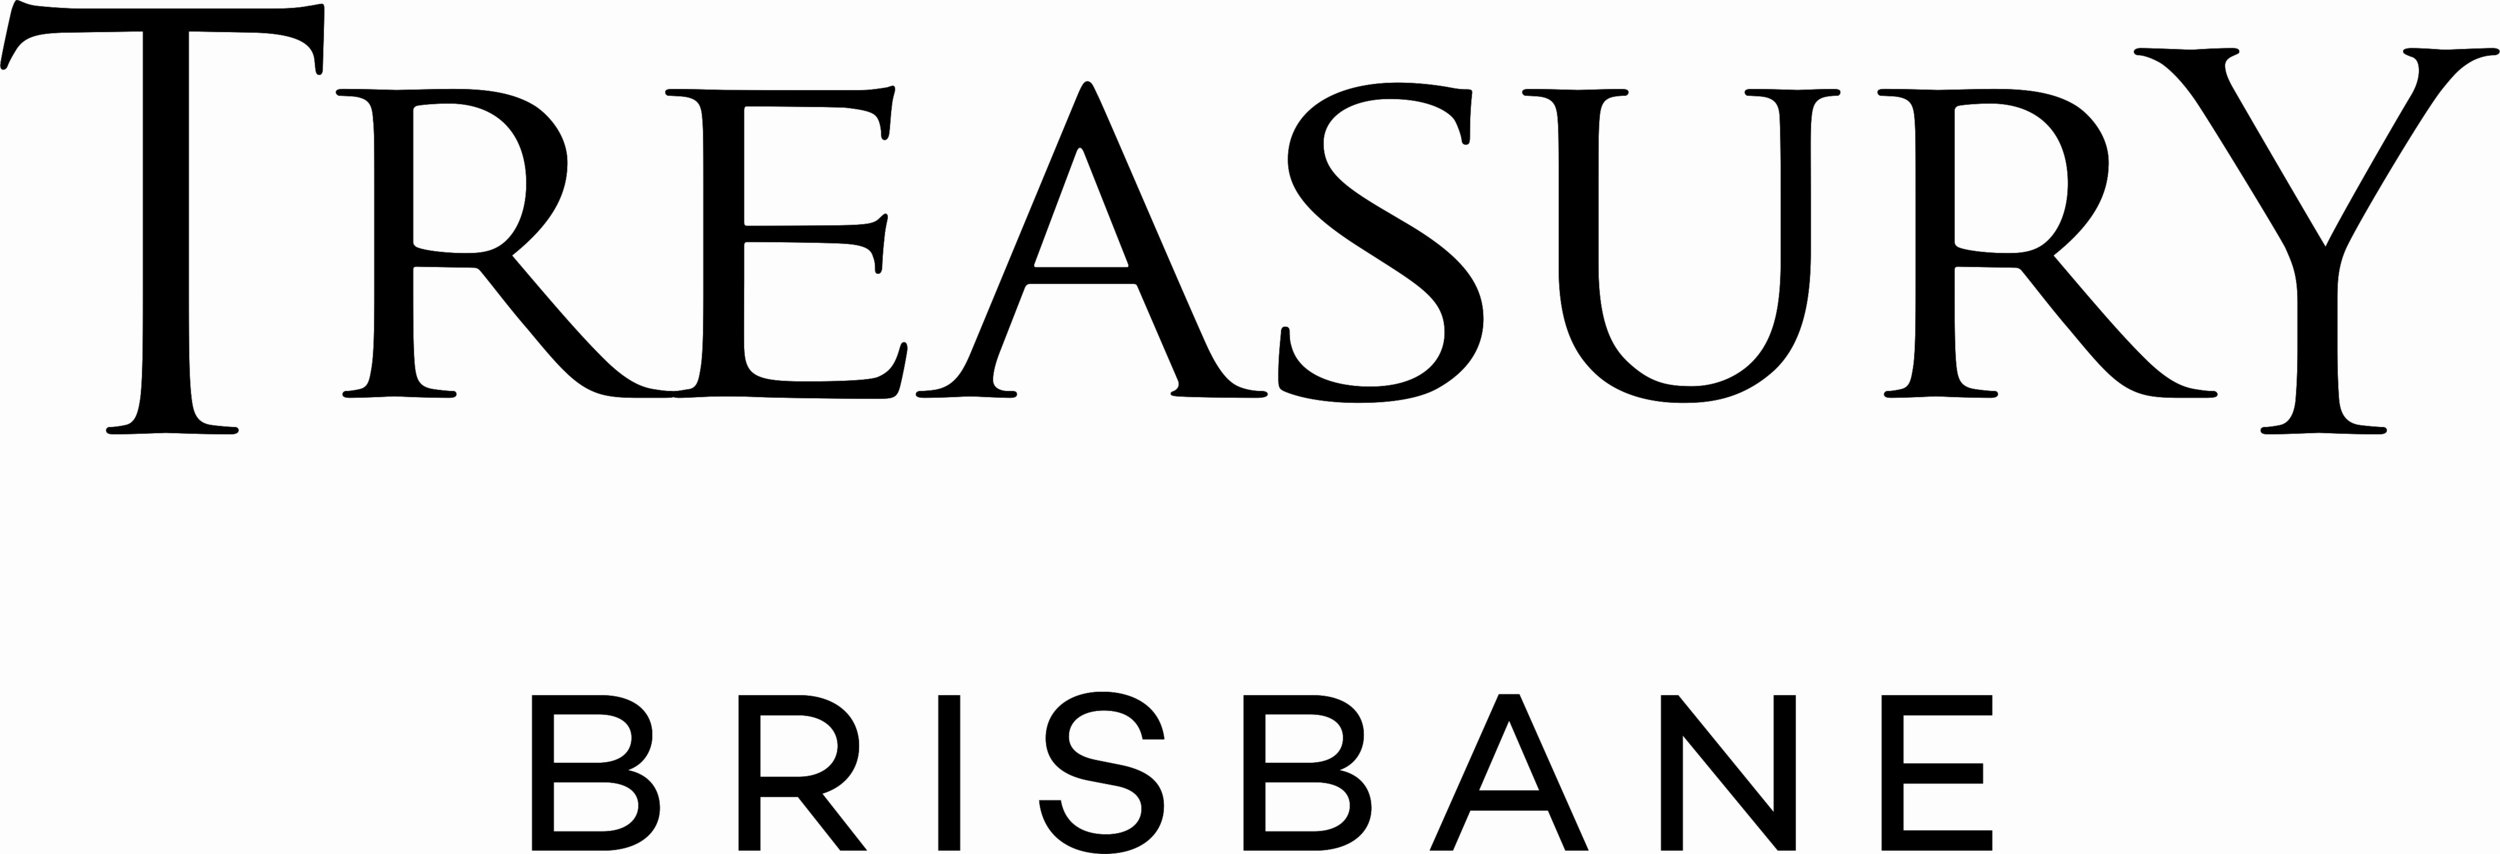 Treasury Mono Logo.jpg